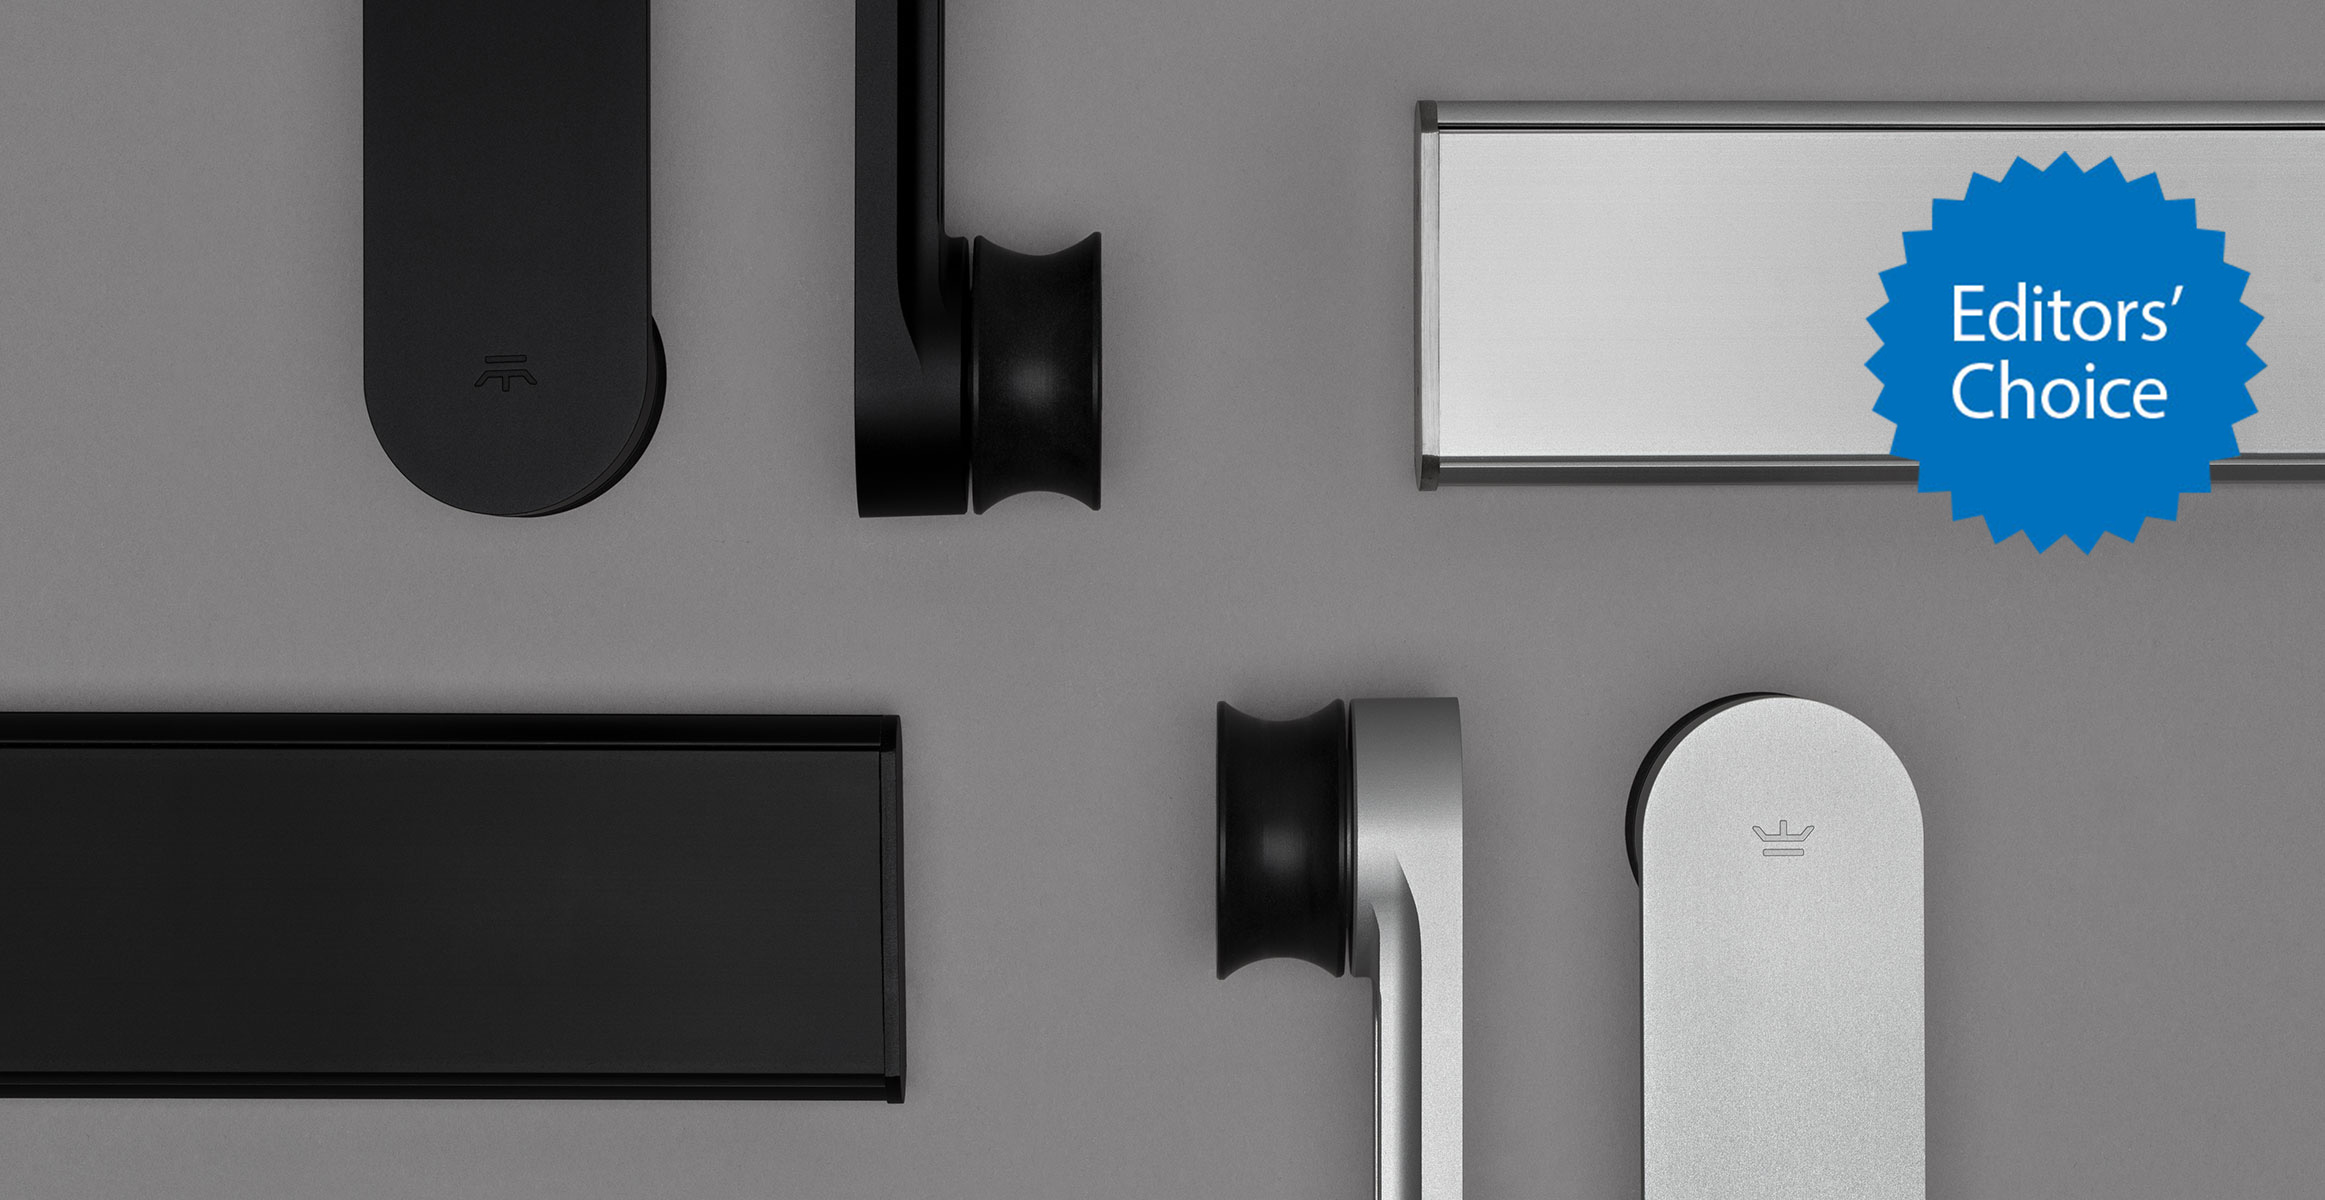 Loki sliding door hardware in black background